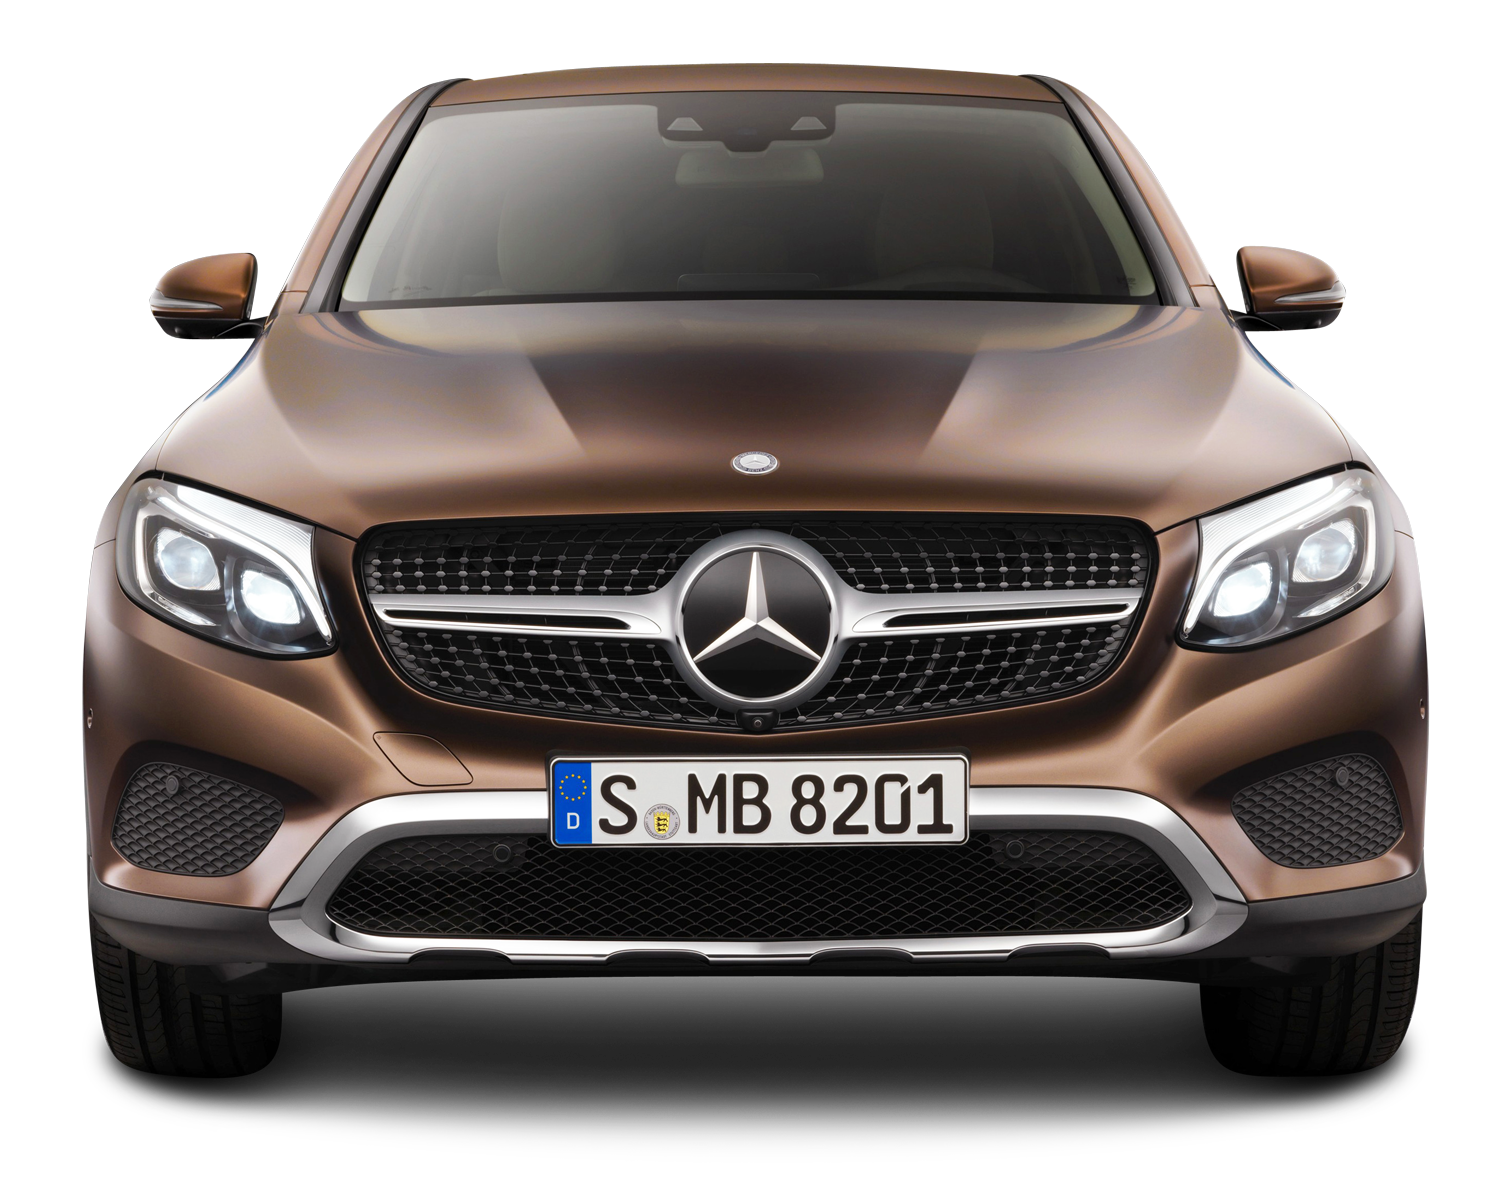 Car Front View Png